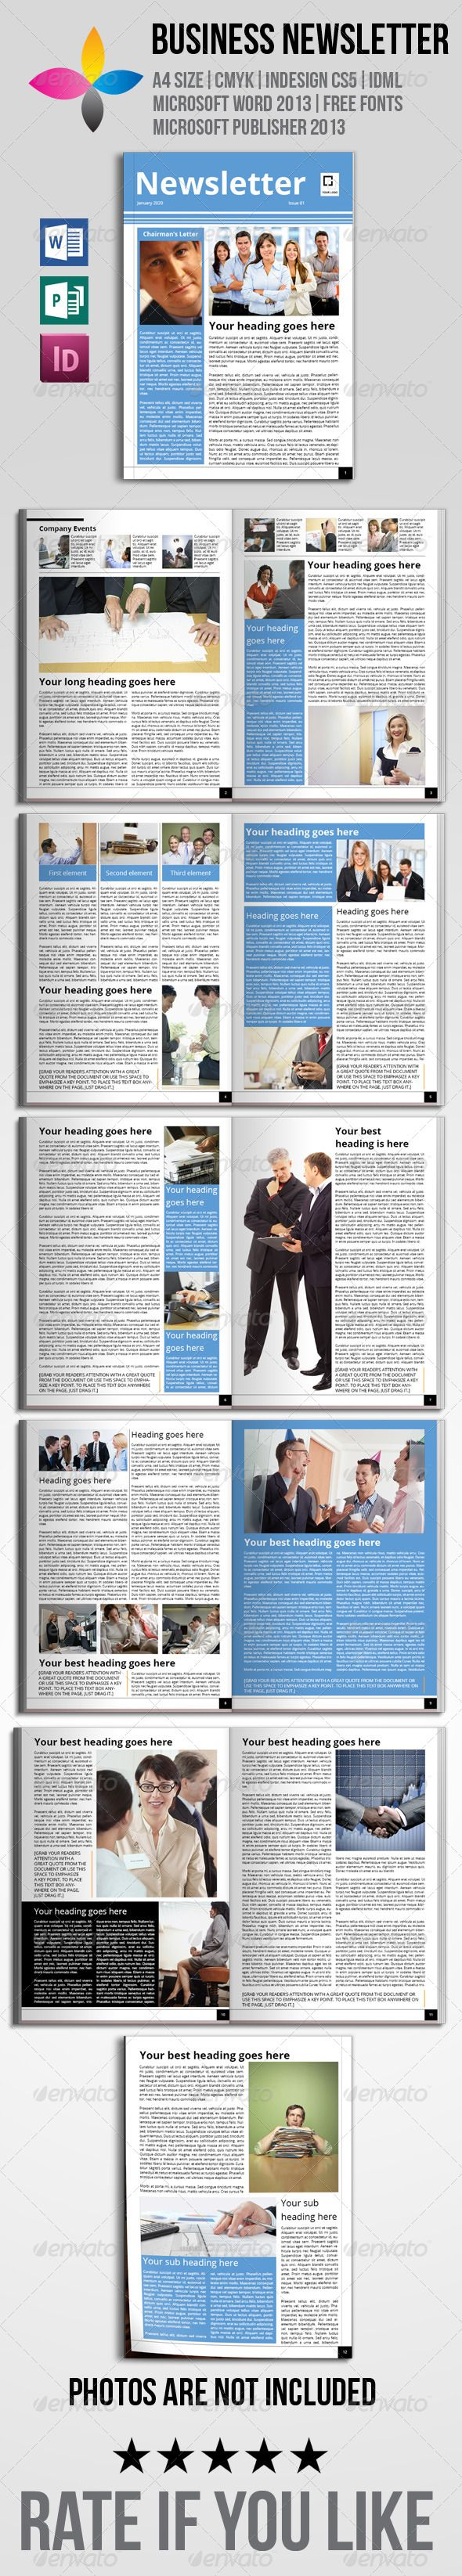 Business Newsletter Newsletters Print Templates